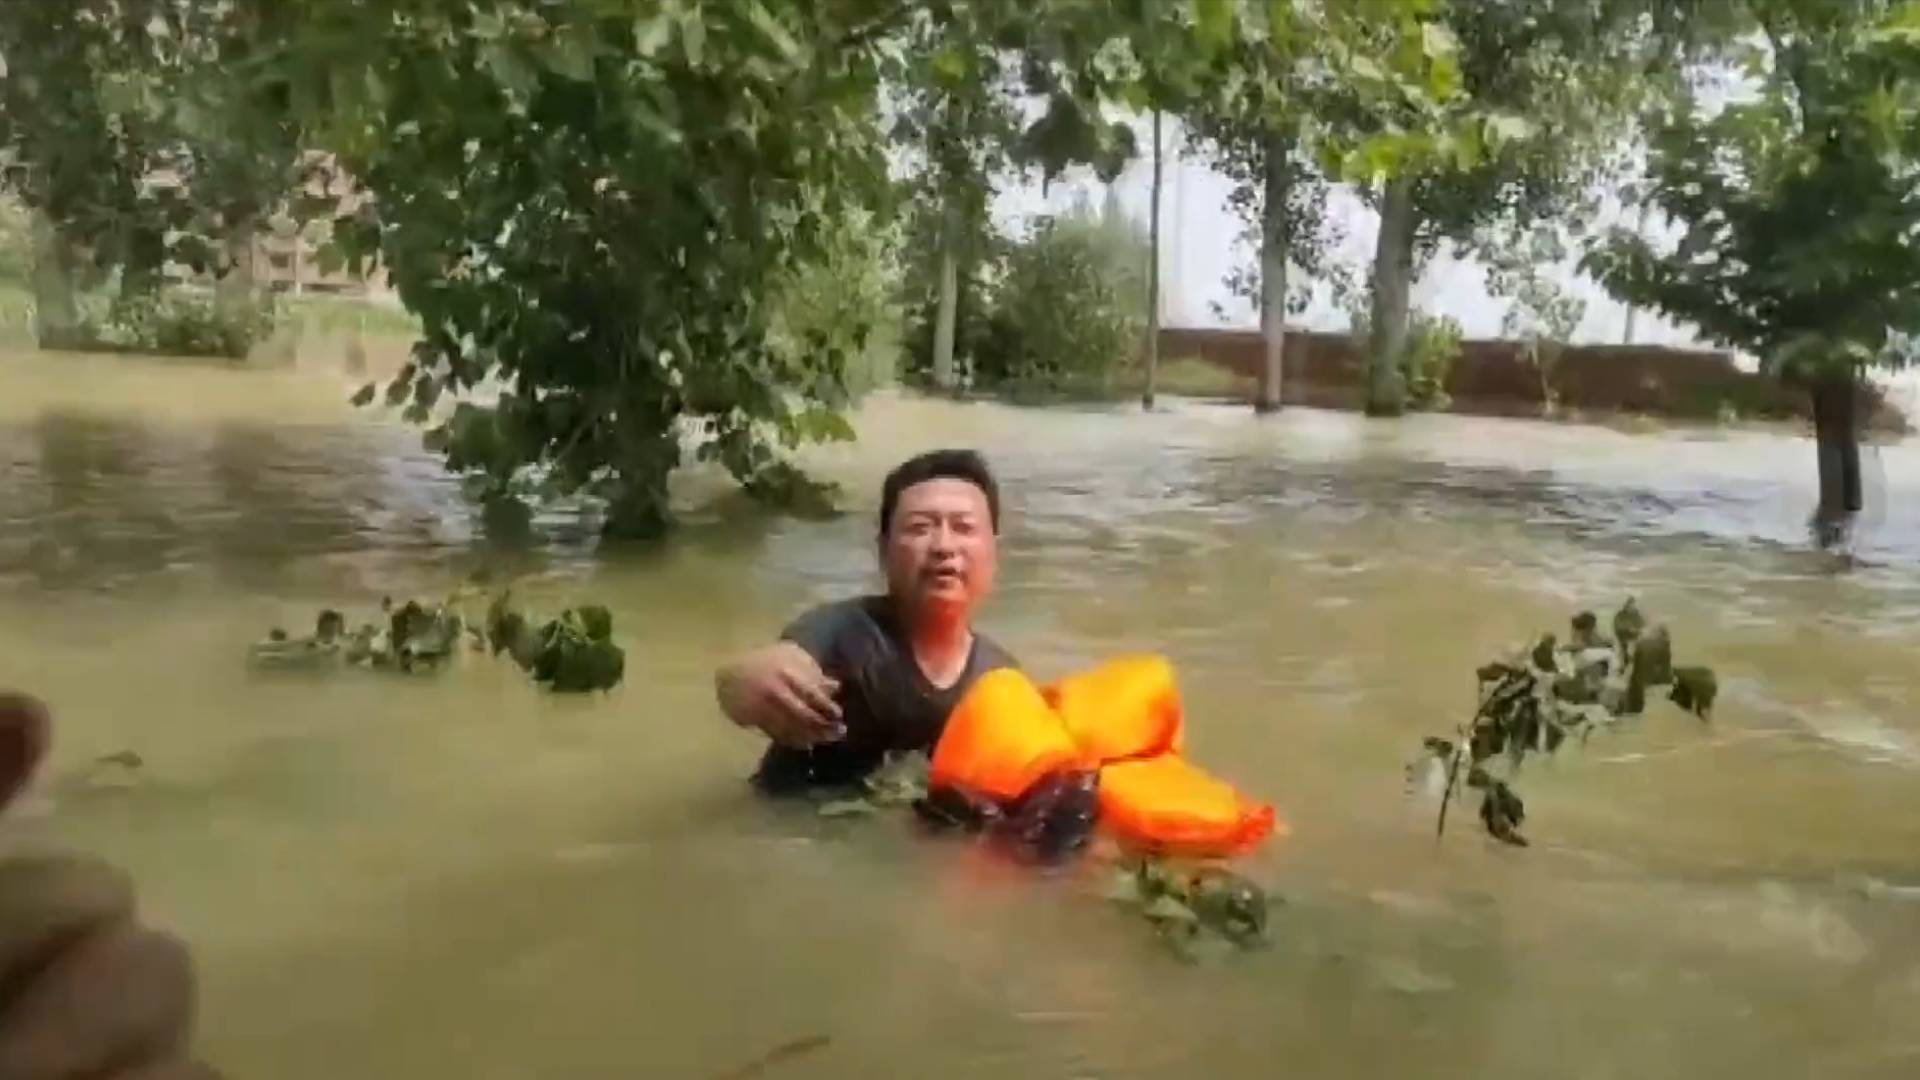 GLOBALink | Rescuers touched by villager who puts others' lives first in flood-hit Henan